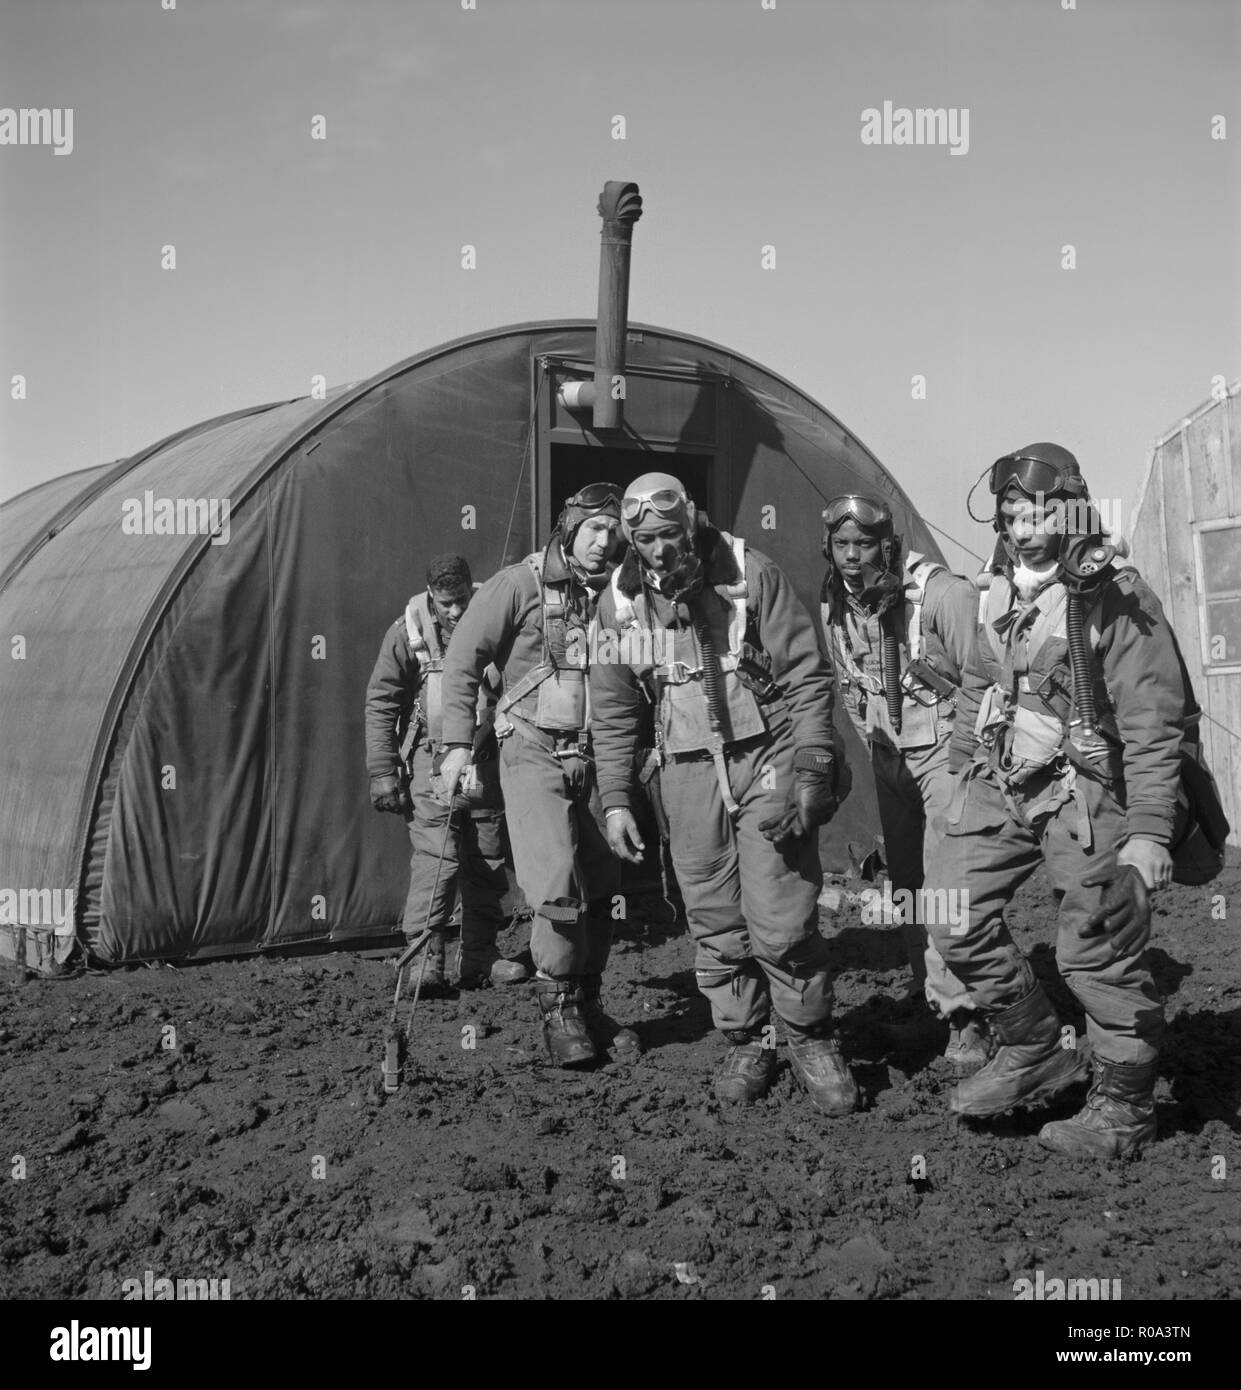 Tuskegee Airmen Leaving Parachute Room, Left to right: Richard S. Harder, Brooklyn, NY, Class 44-B; Unidentified Airman; Thurston L. Gaines, Jr., Freeport, NY, Class 44-G; Newman C. Golden, Cincinnati, OH, Class 44-G; Wendell M. Lucas, Fairmont Heights, MD, Class 44-E, Ramitelli, Italy, Toni Frissell, March 1945 Stock Photo